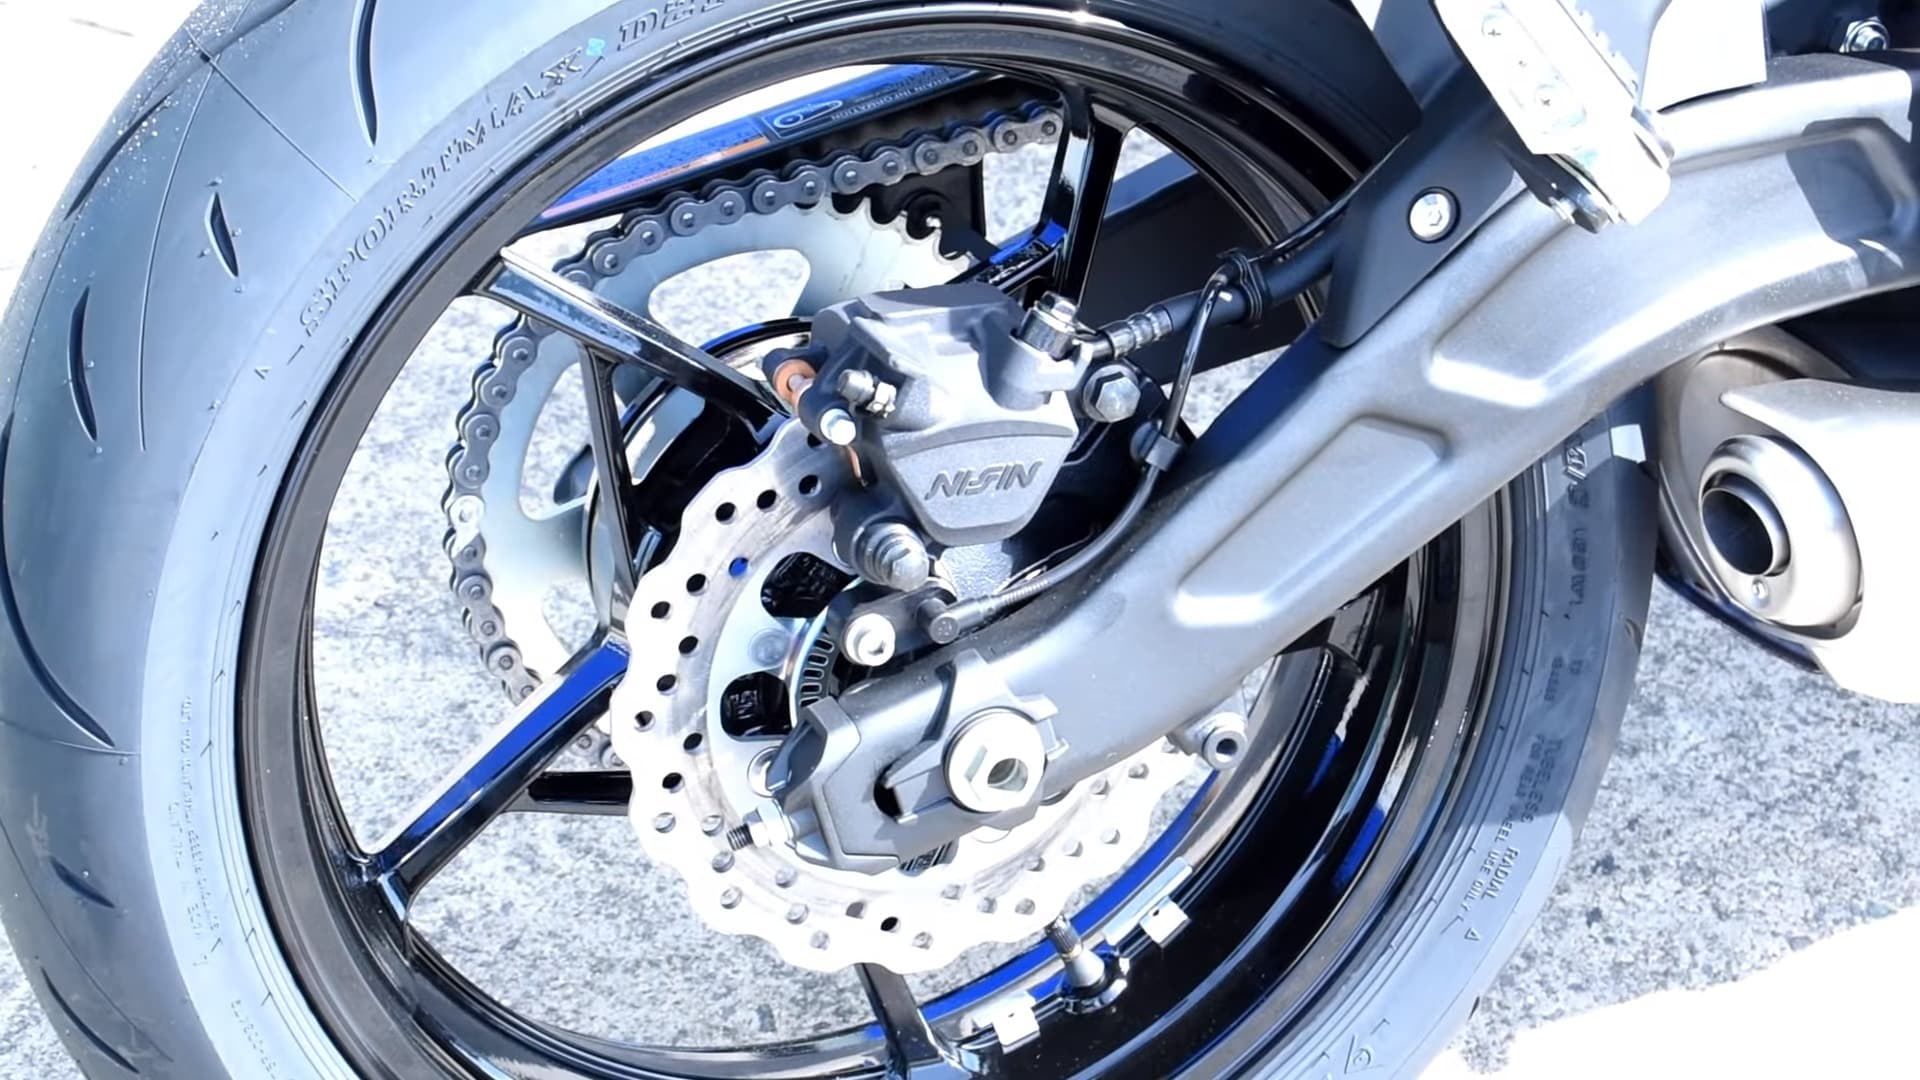 2018 Kawasaki ninja 650 rear wheel